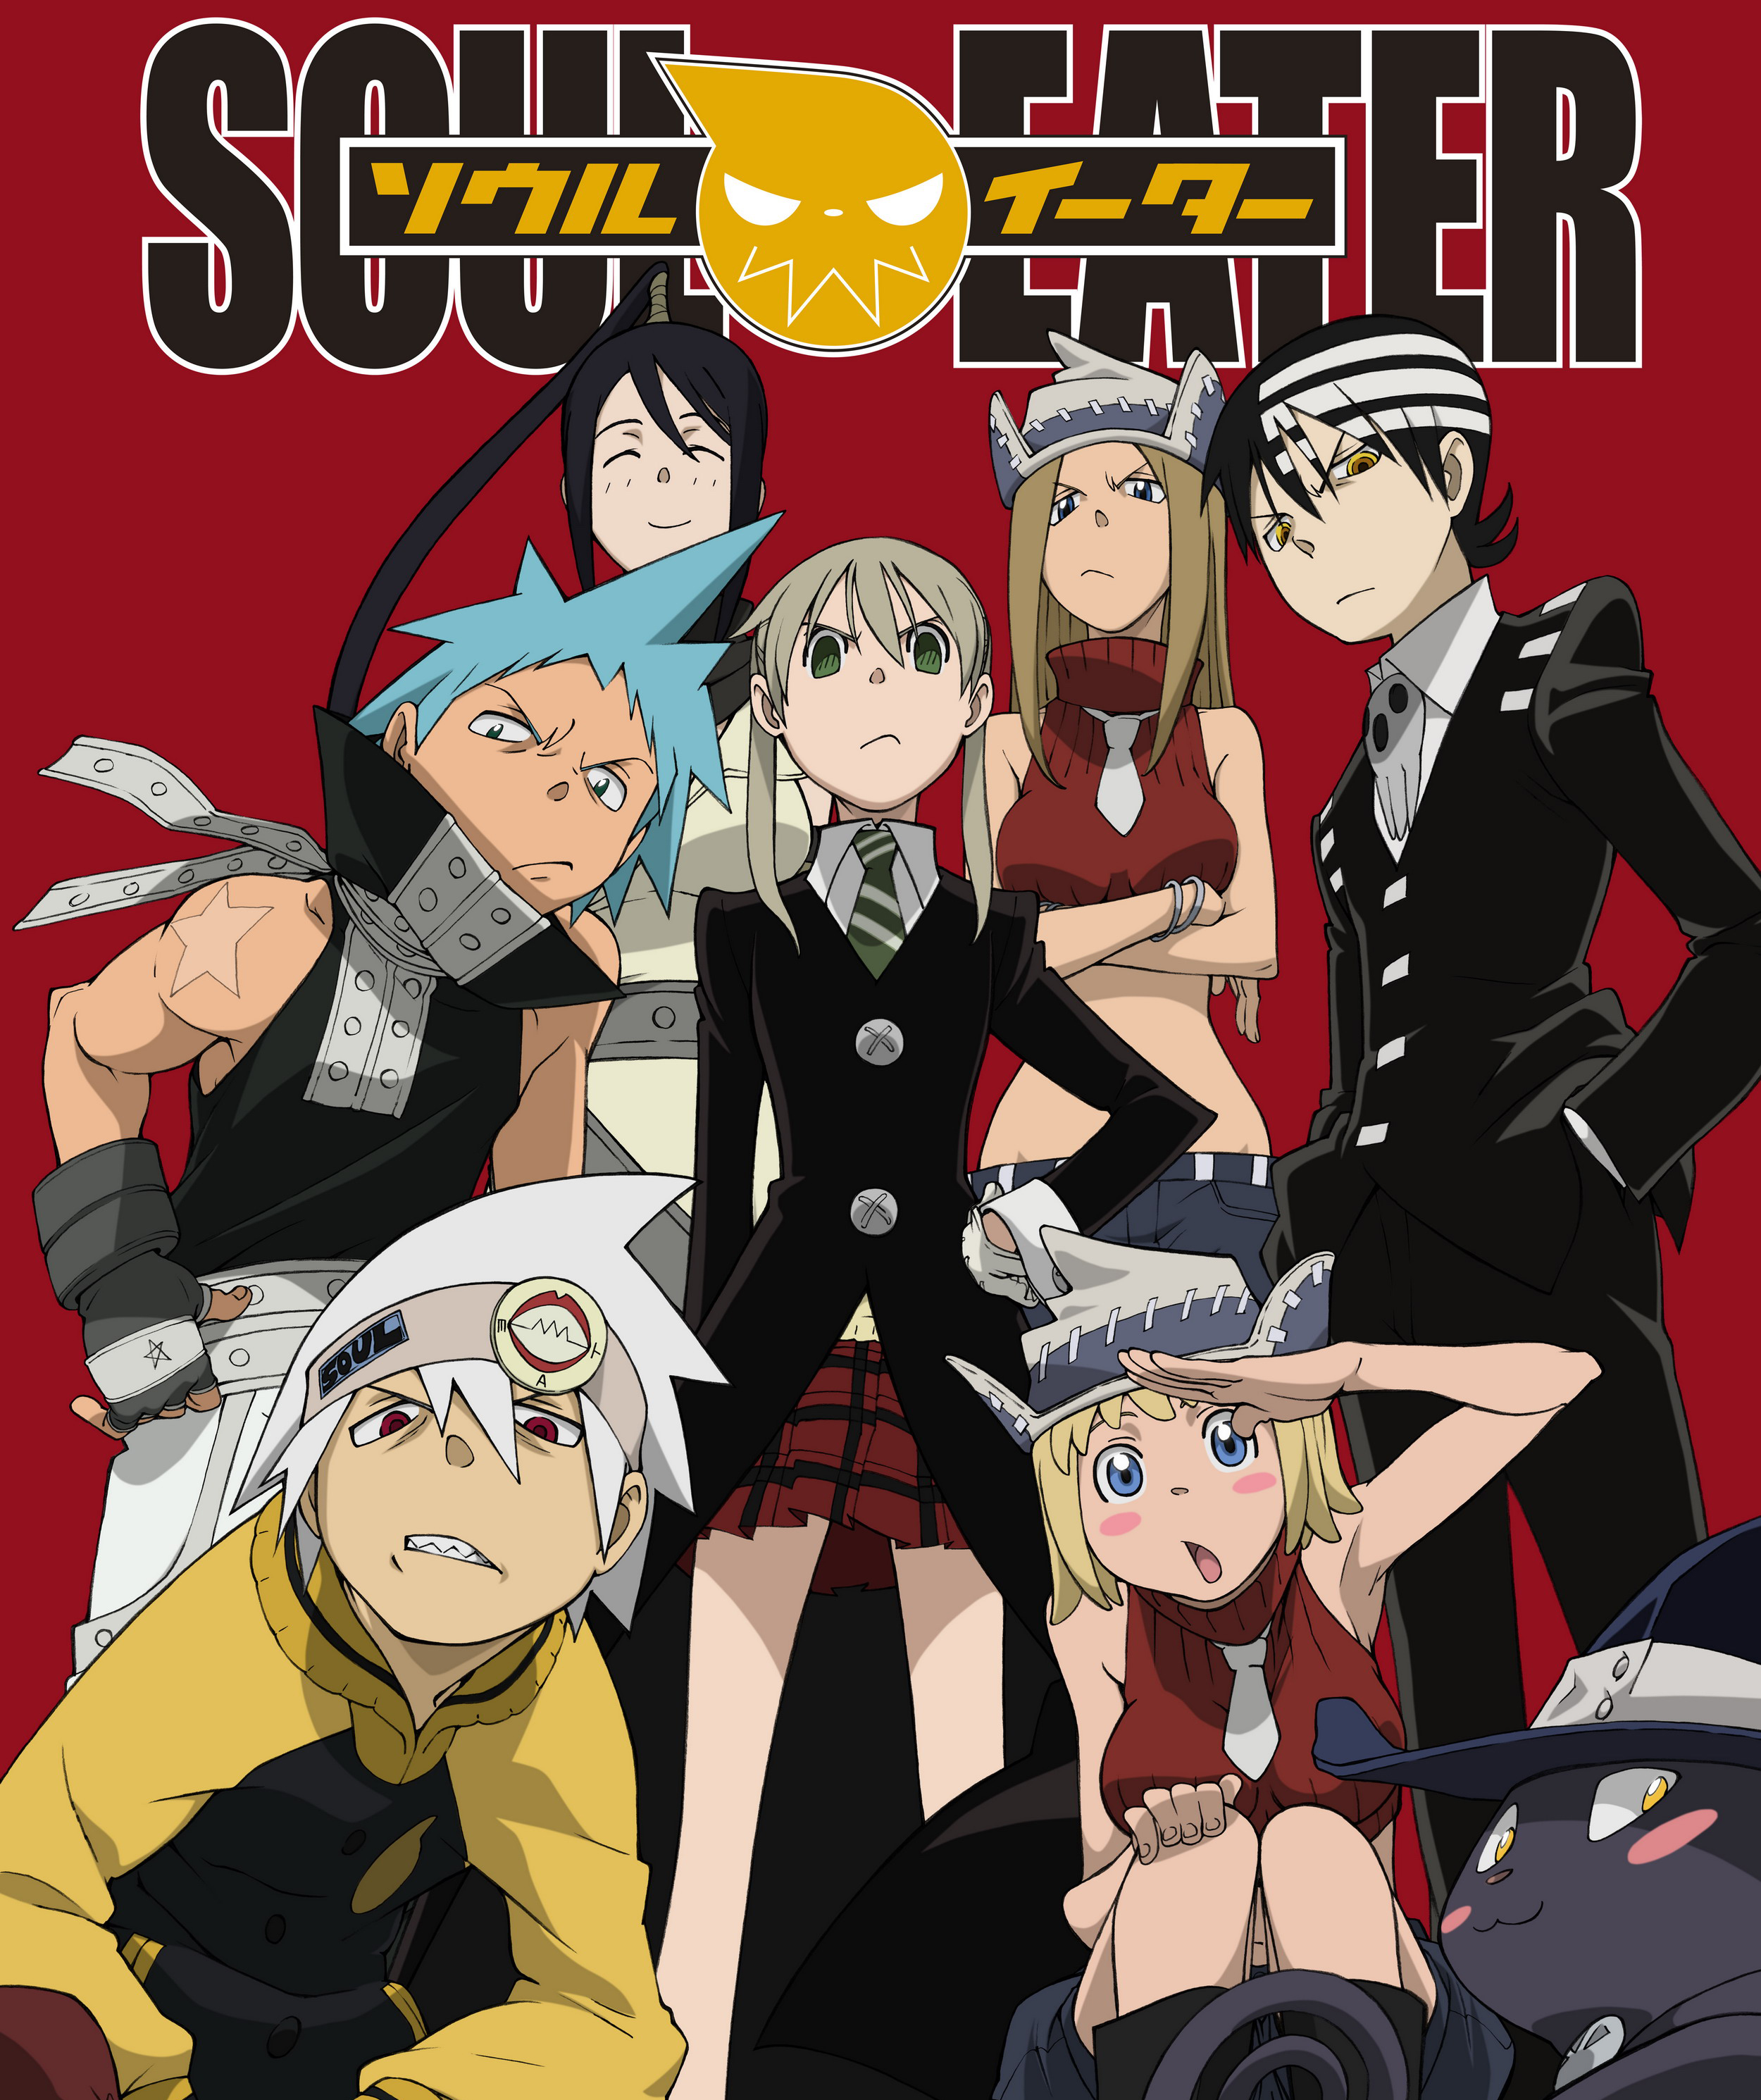 http://static3.wikia.nocookie.net/__cb20091113184538/souleater/images/d/d4/SoulEater.jpg